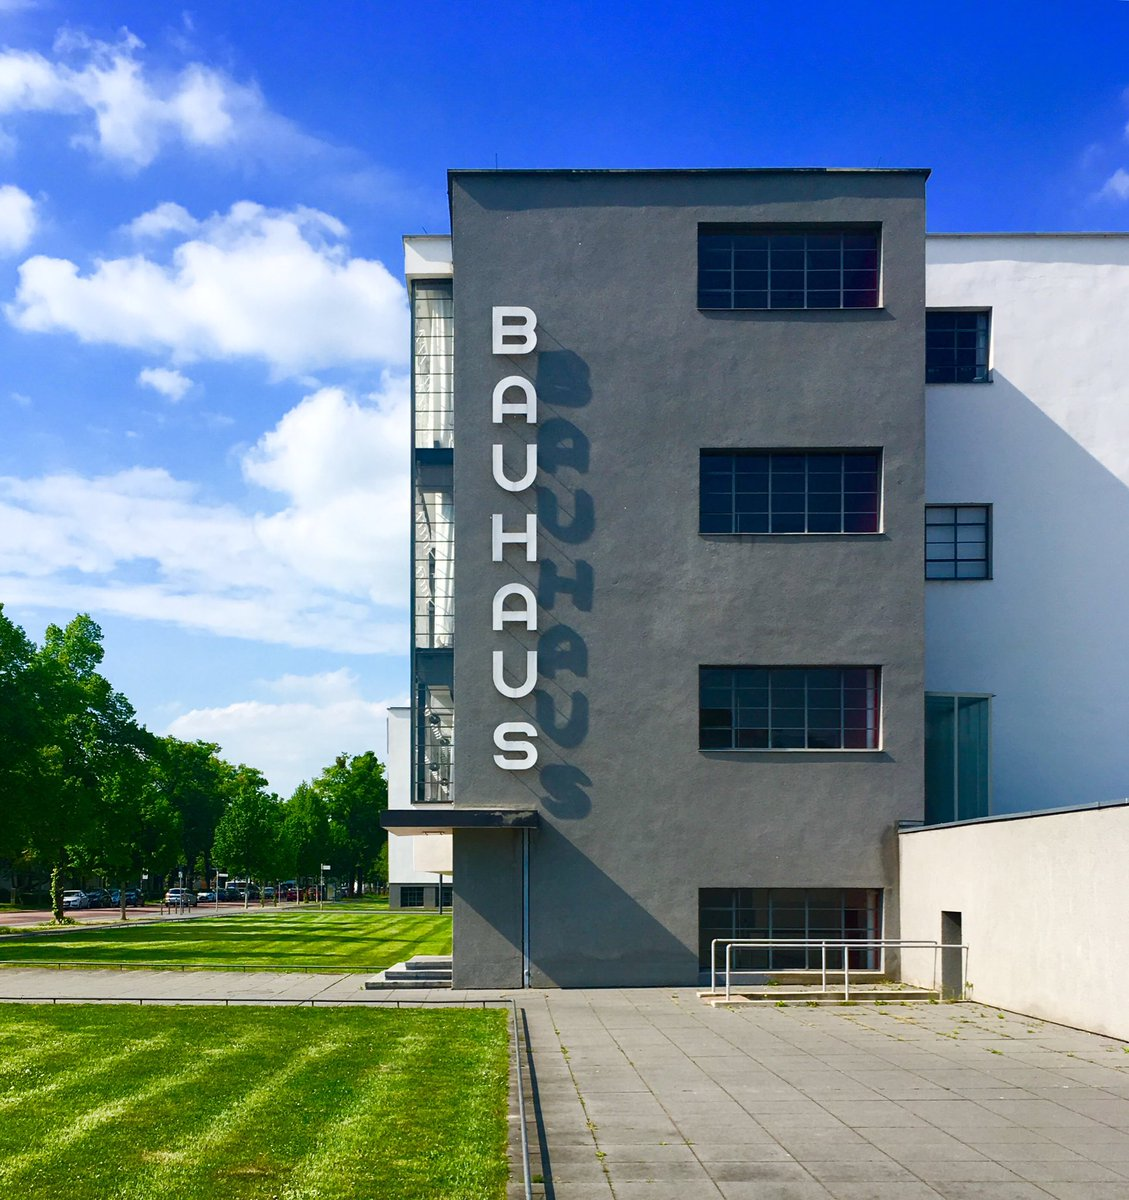 Bauhaus logo on the building, designed with the sun's movement in mind. #Bauhaus https://t.co/OLMMURYJWP